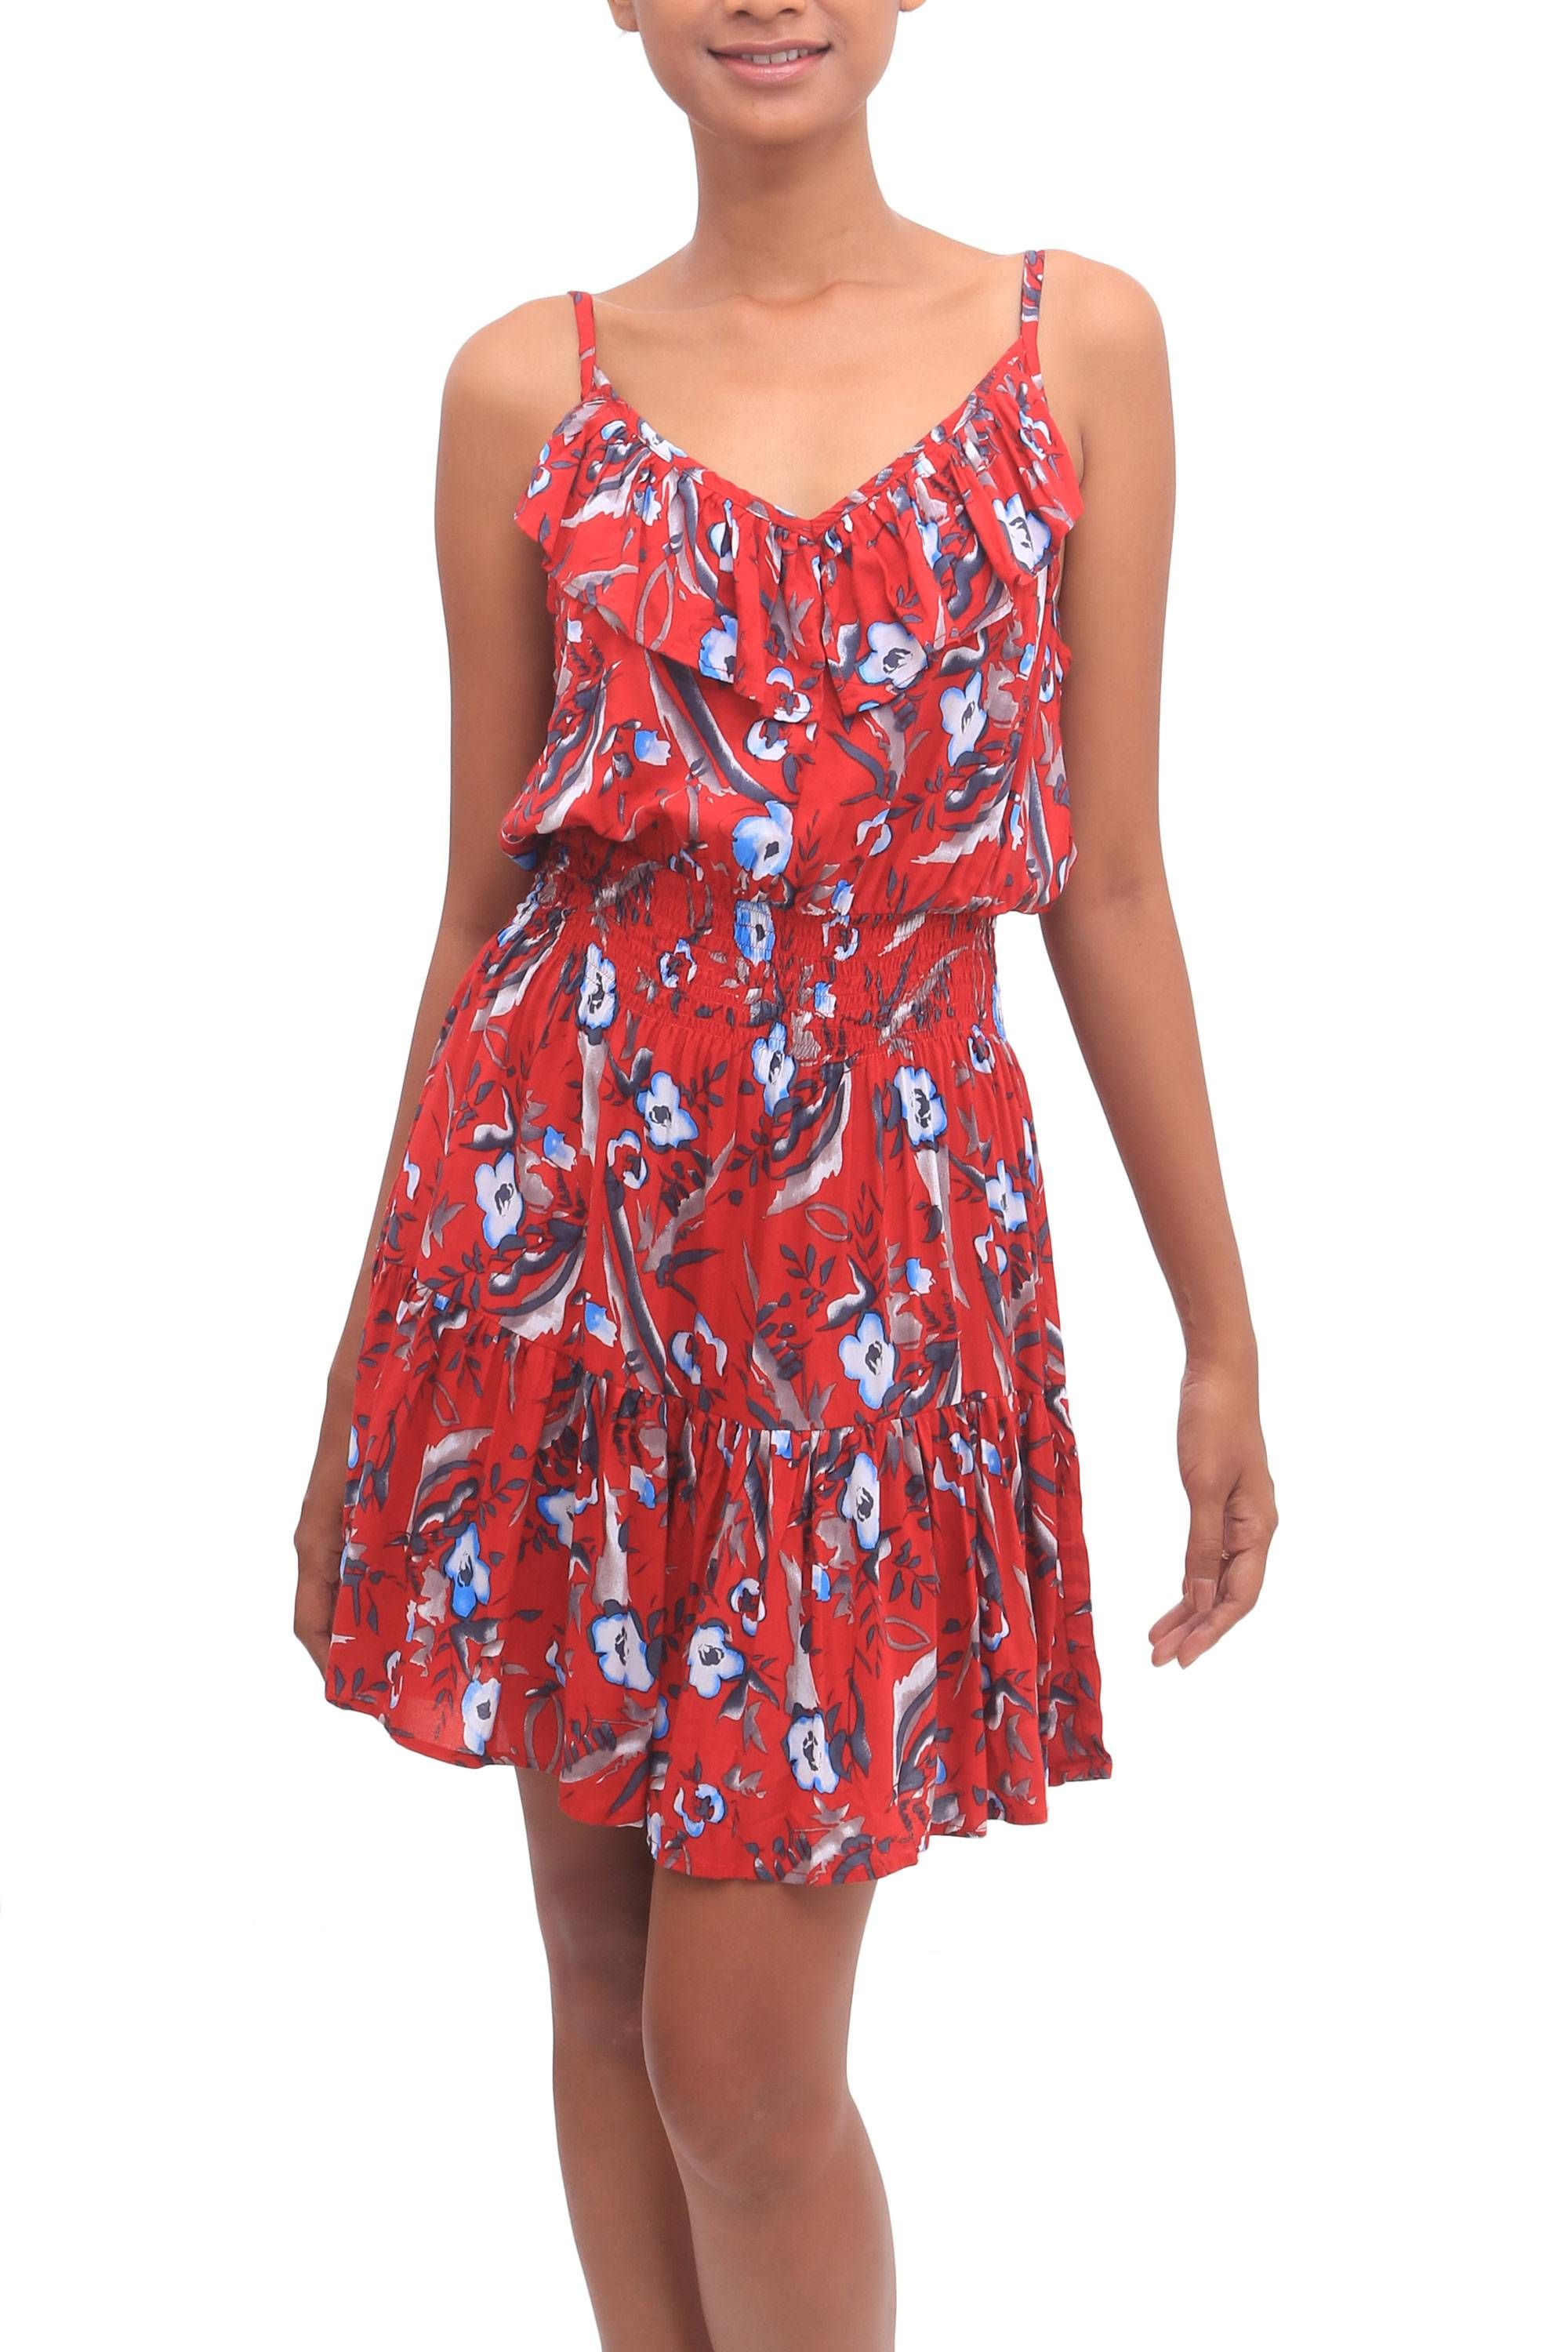 Floral Rayon Empire Waist Short Sundress in Strawberry, 'Strawberry Bouquet' #shortsundress